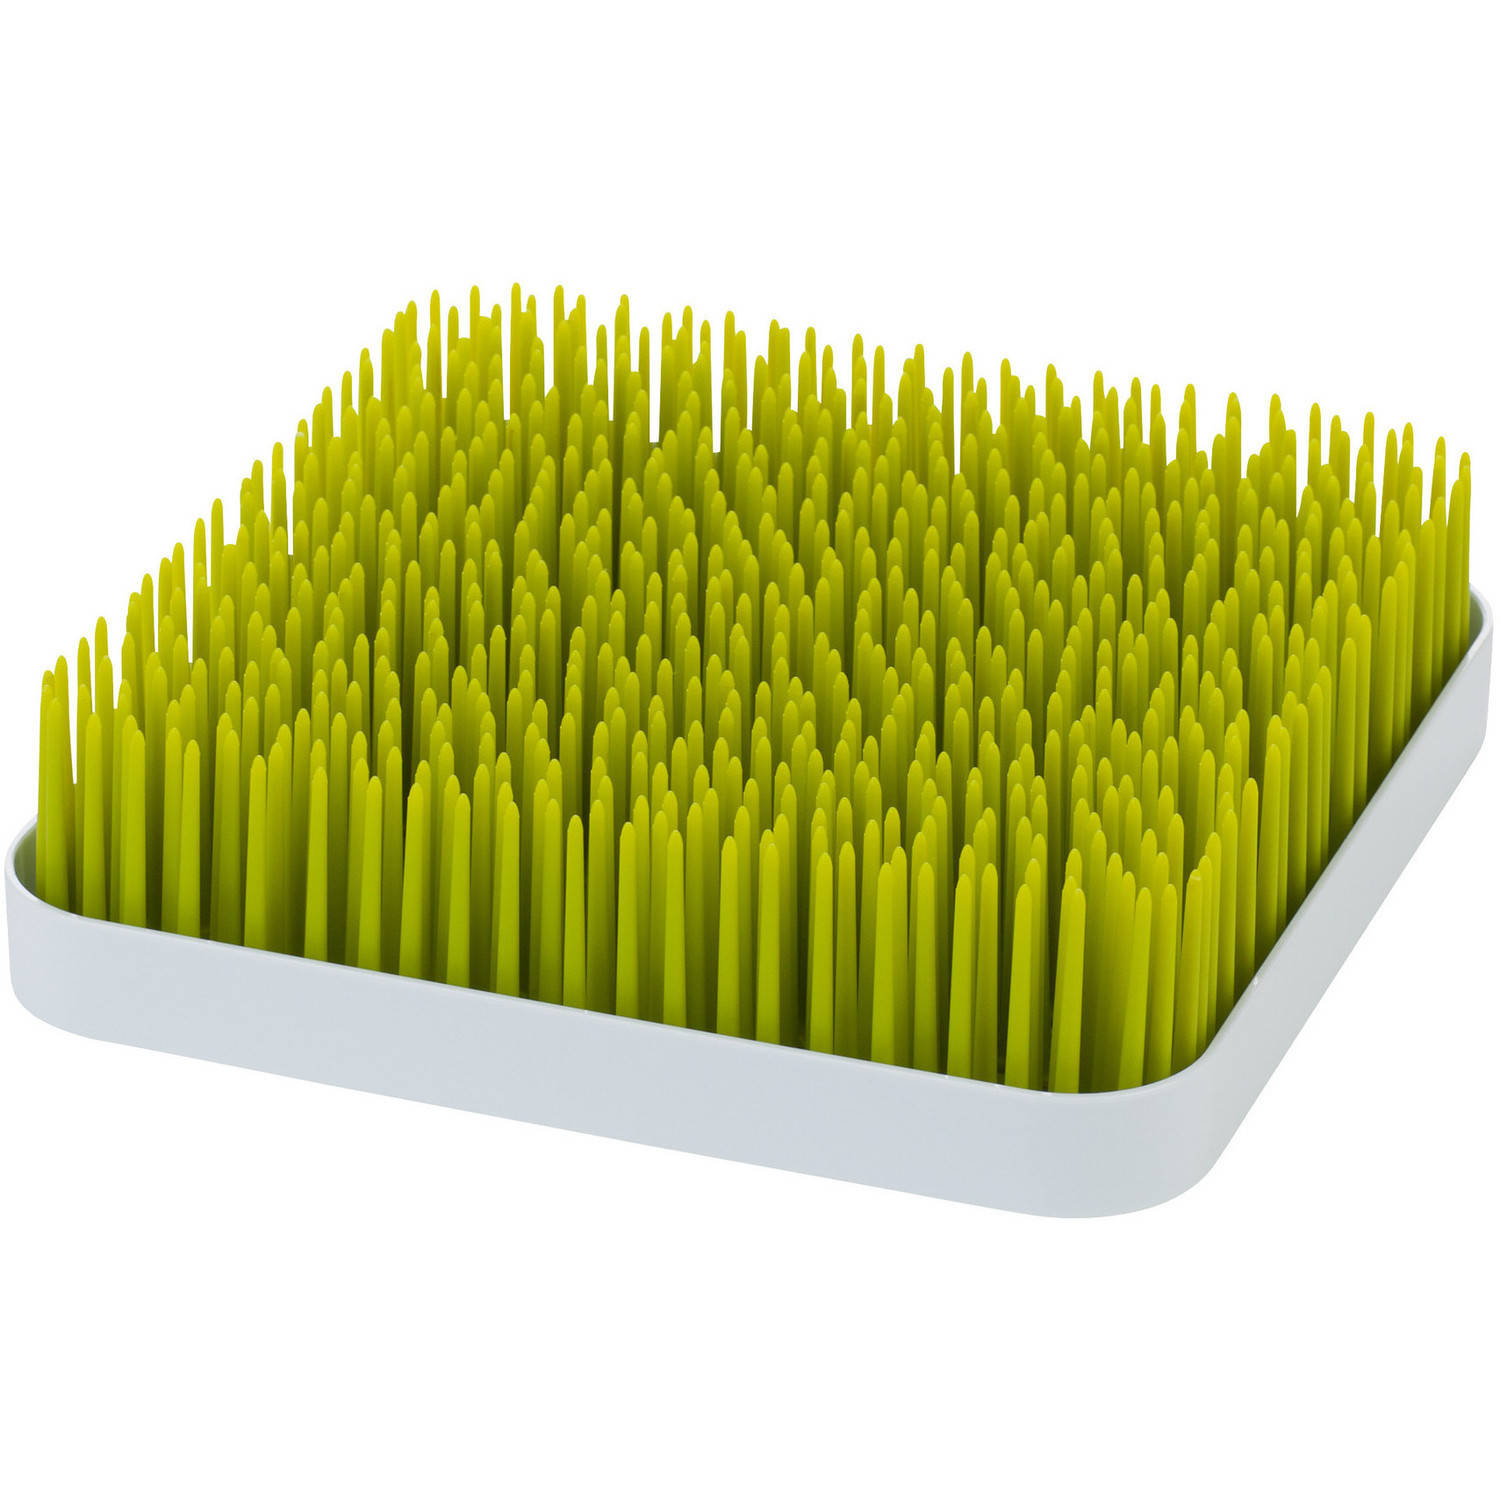 Boon - Countertop Bottle Drying Rack, Grass